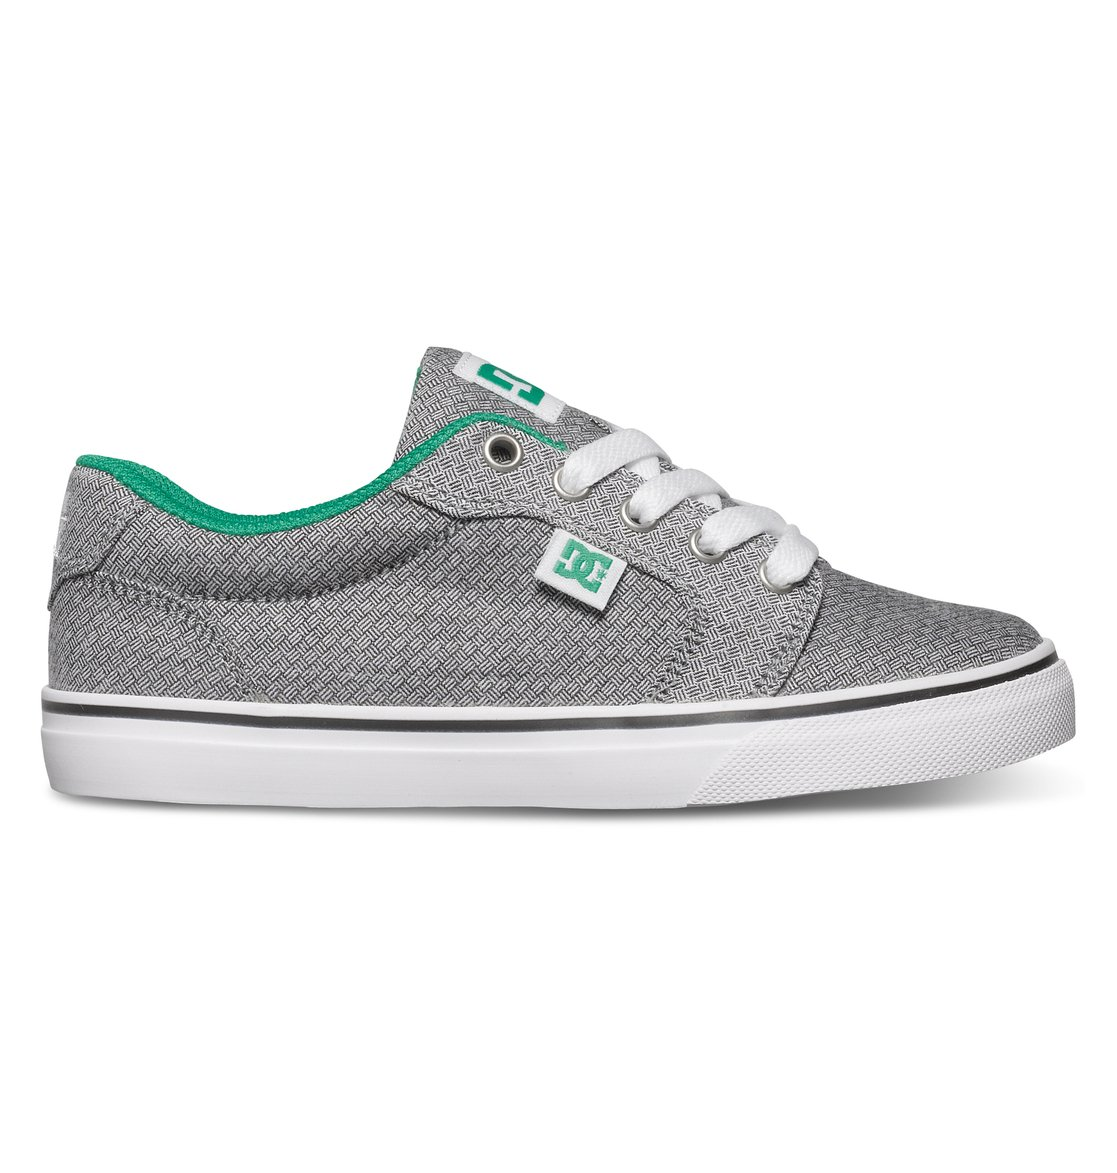 huge discount 654fd cdc36 Anvil TX SE - Low Top Skaterschuhe ADBS300064 | DC Shoes